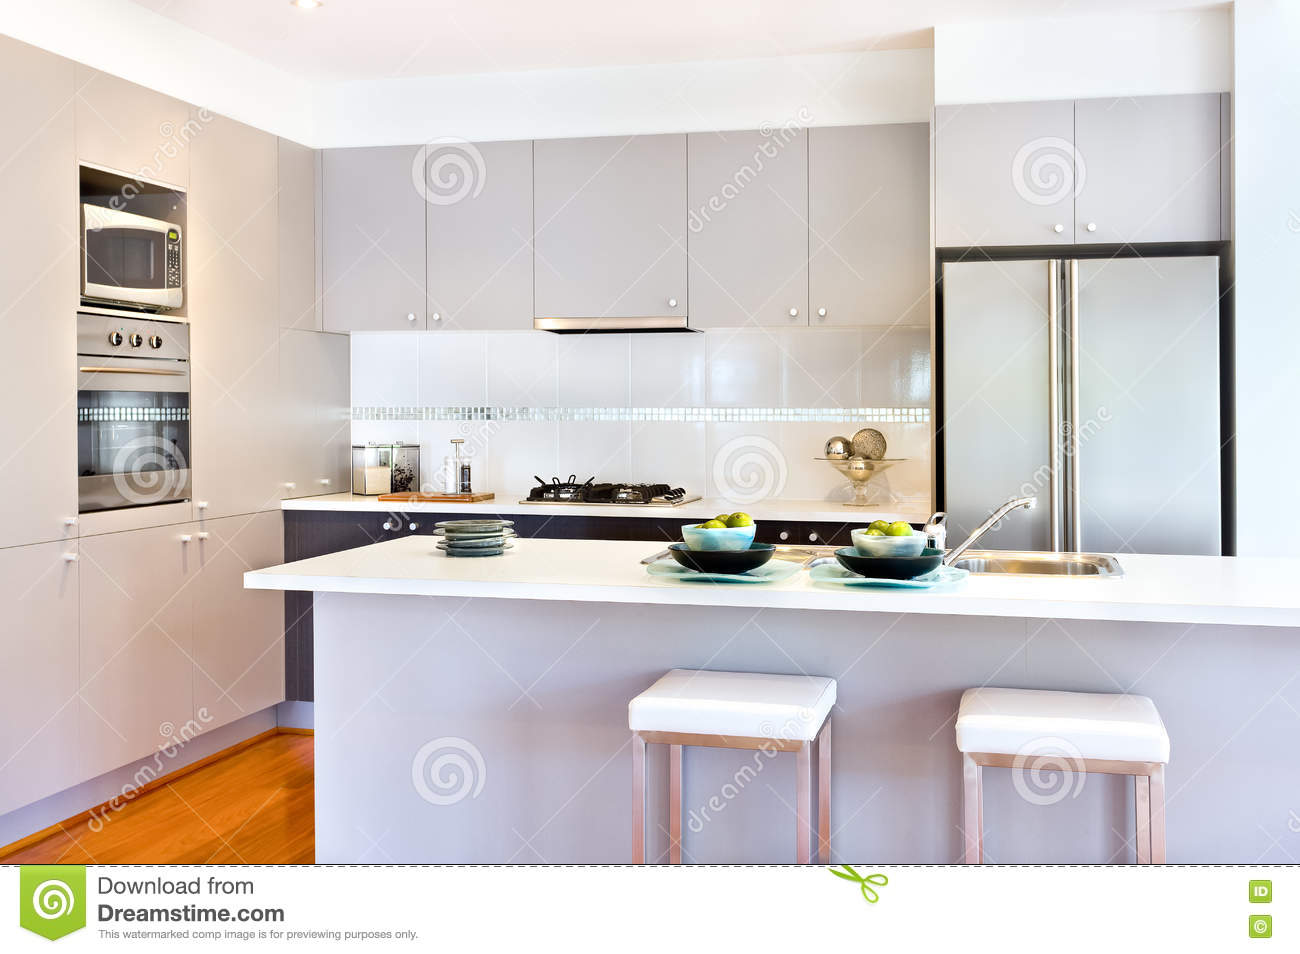 Luxury kitchen with white walls of a modern house